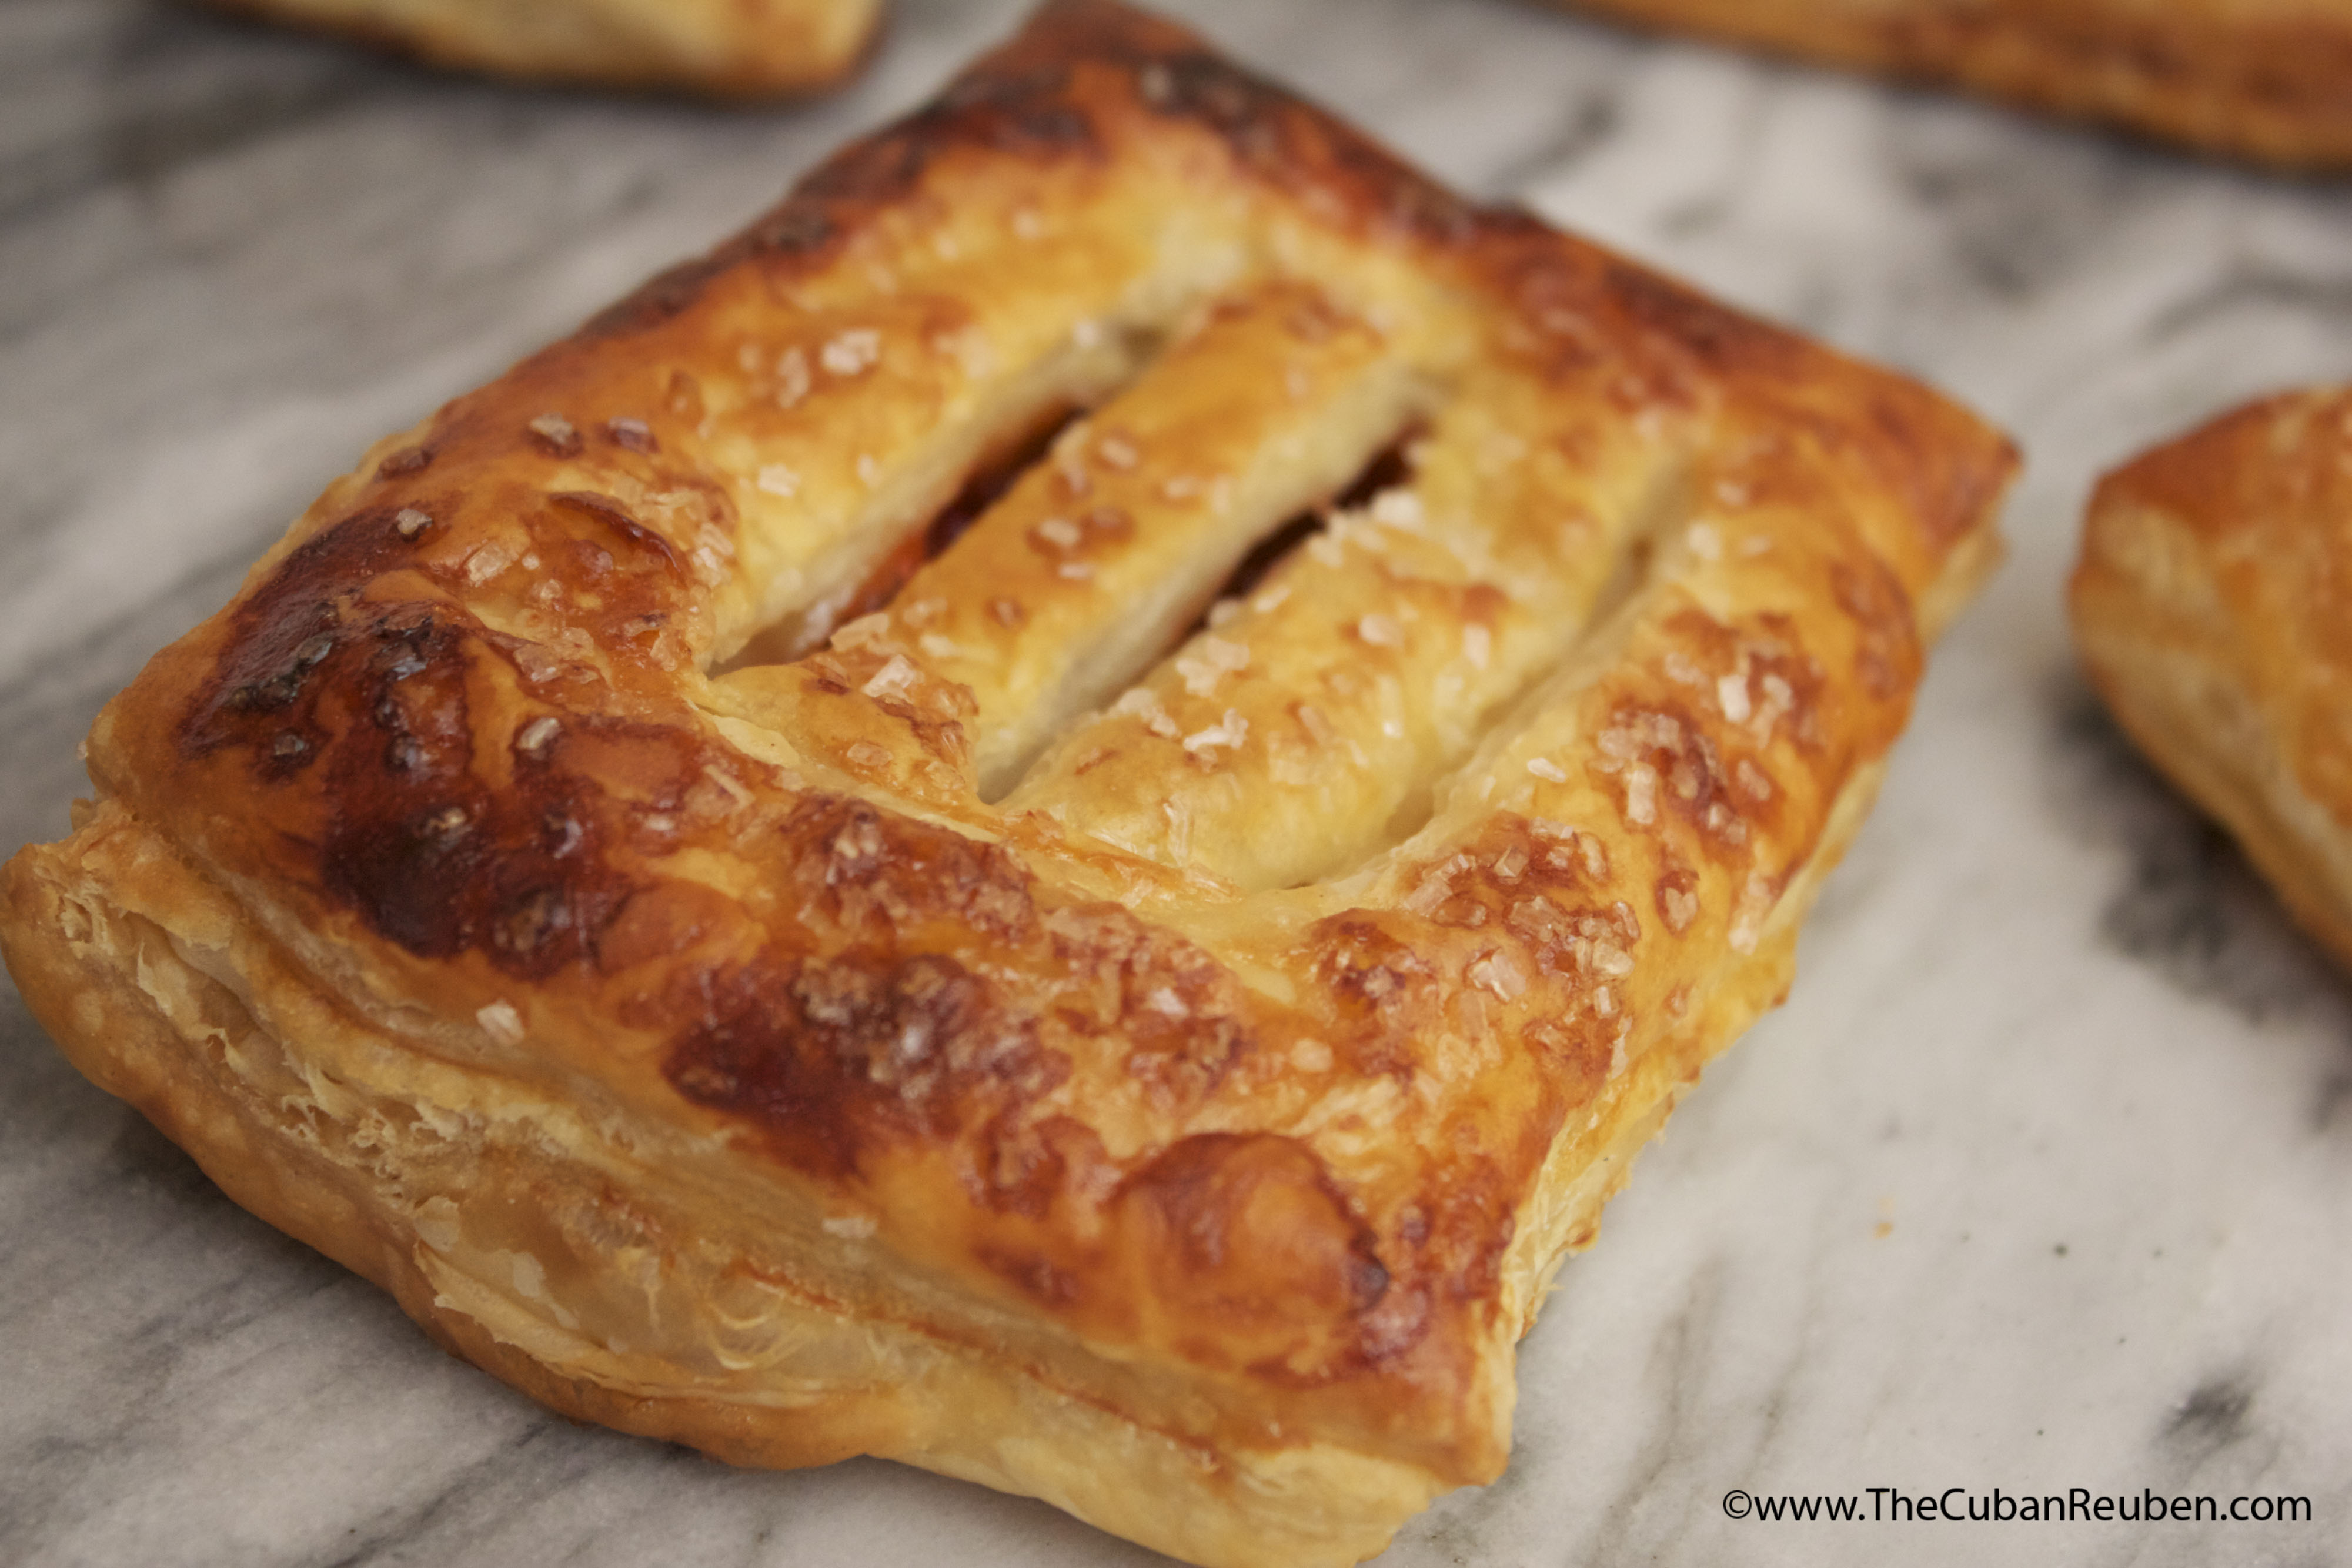 True Culinary Adventure: Guava and Cheese Pastry | The Cuban Reuben